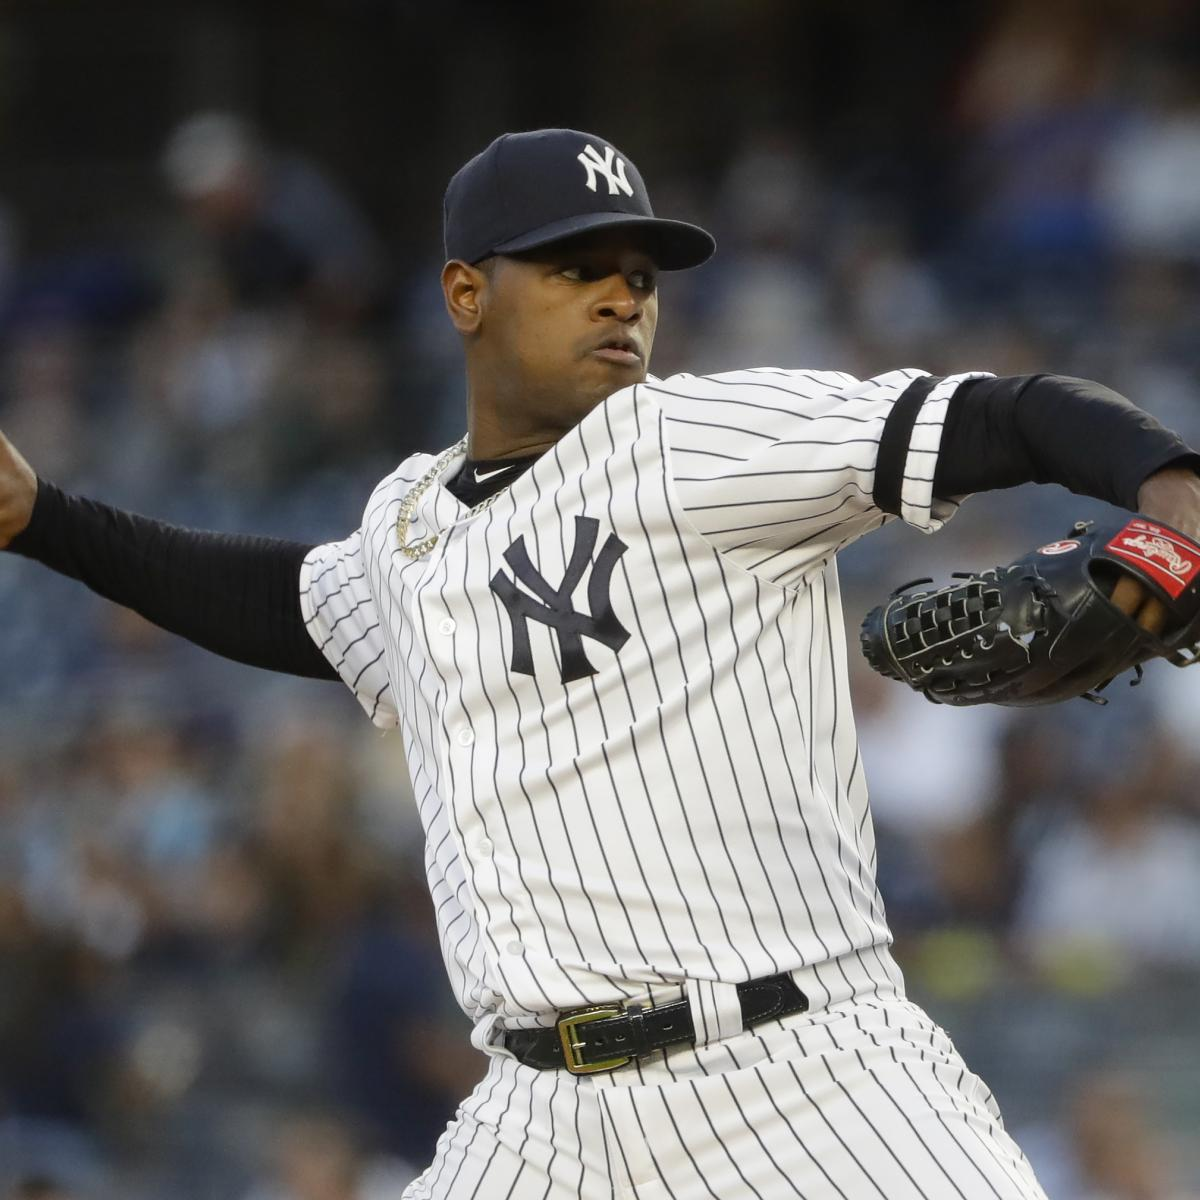 Yankees News: Luis Severino Shut Down After Forearm Injury Diagnosed as Soreness